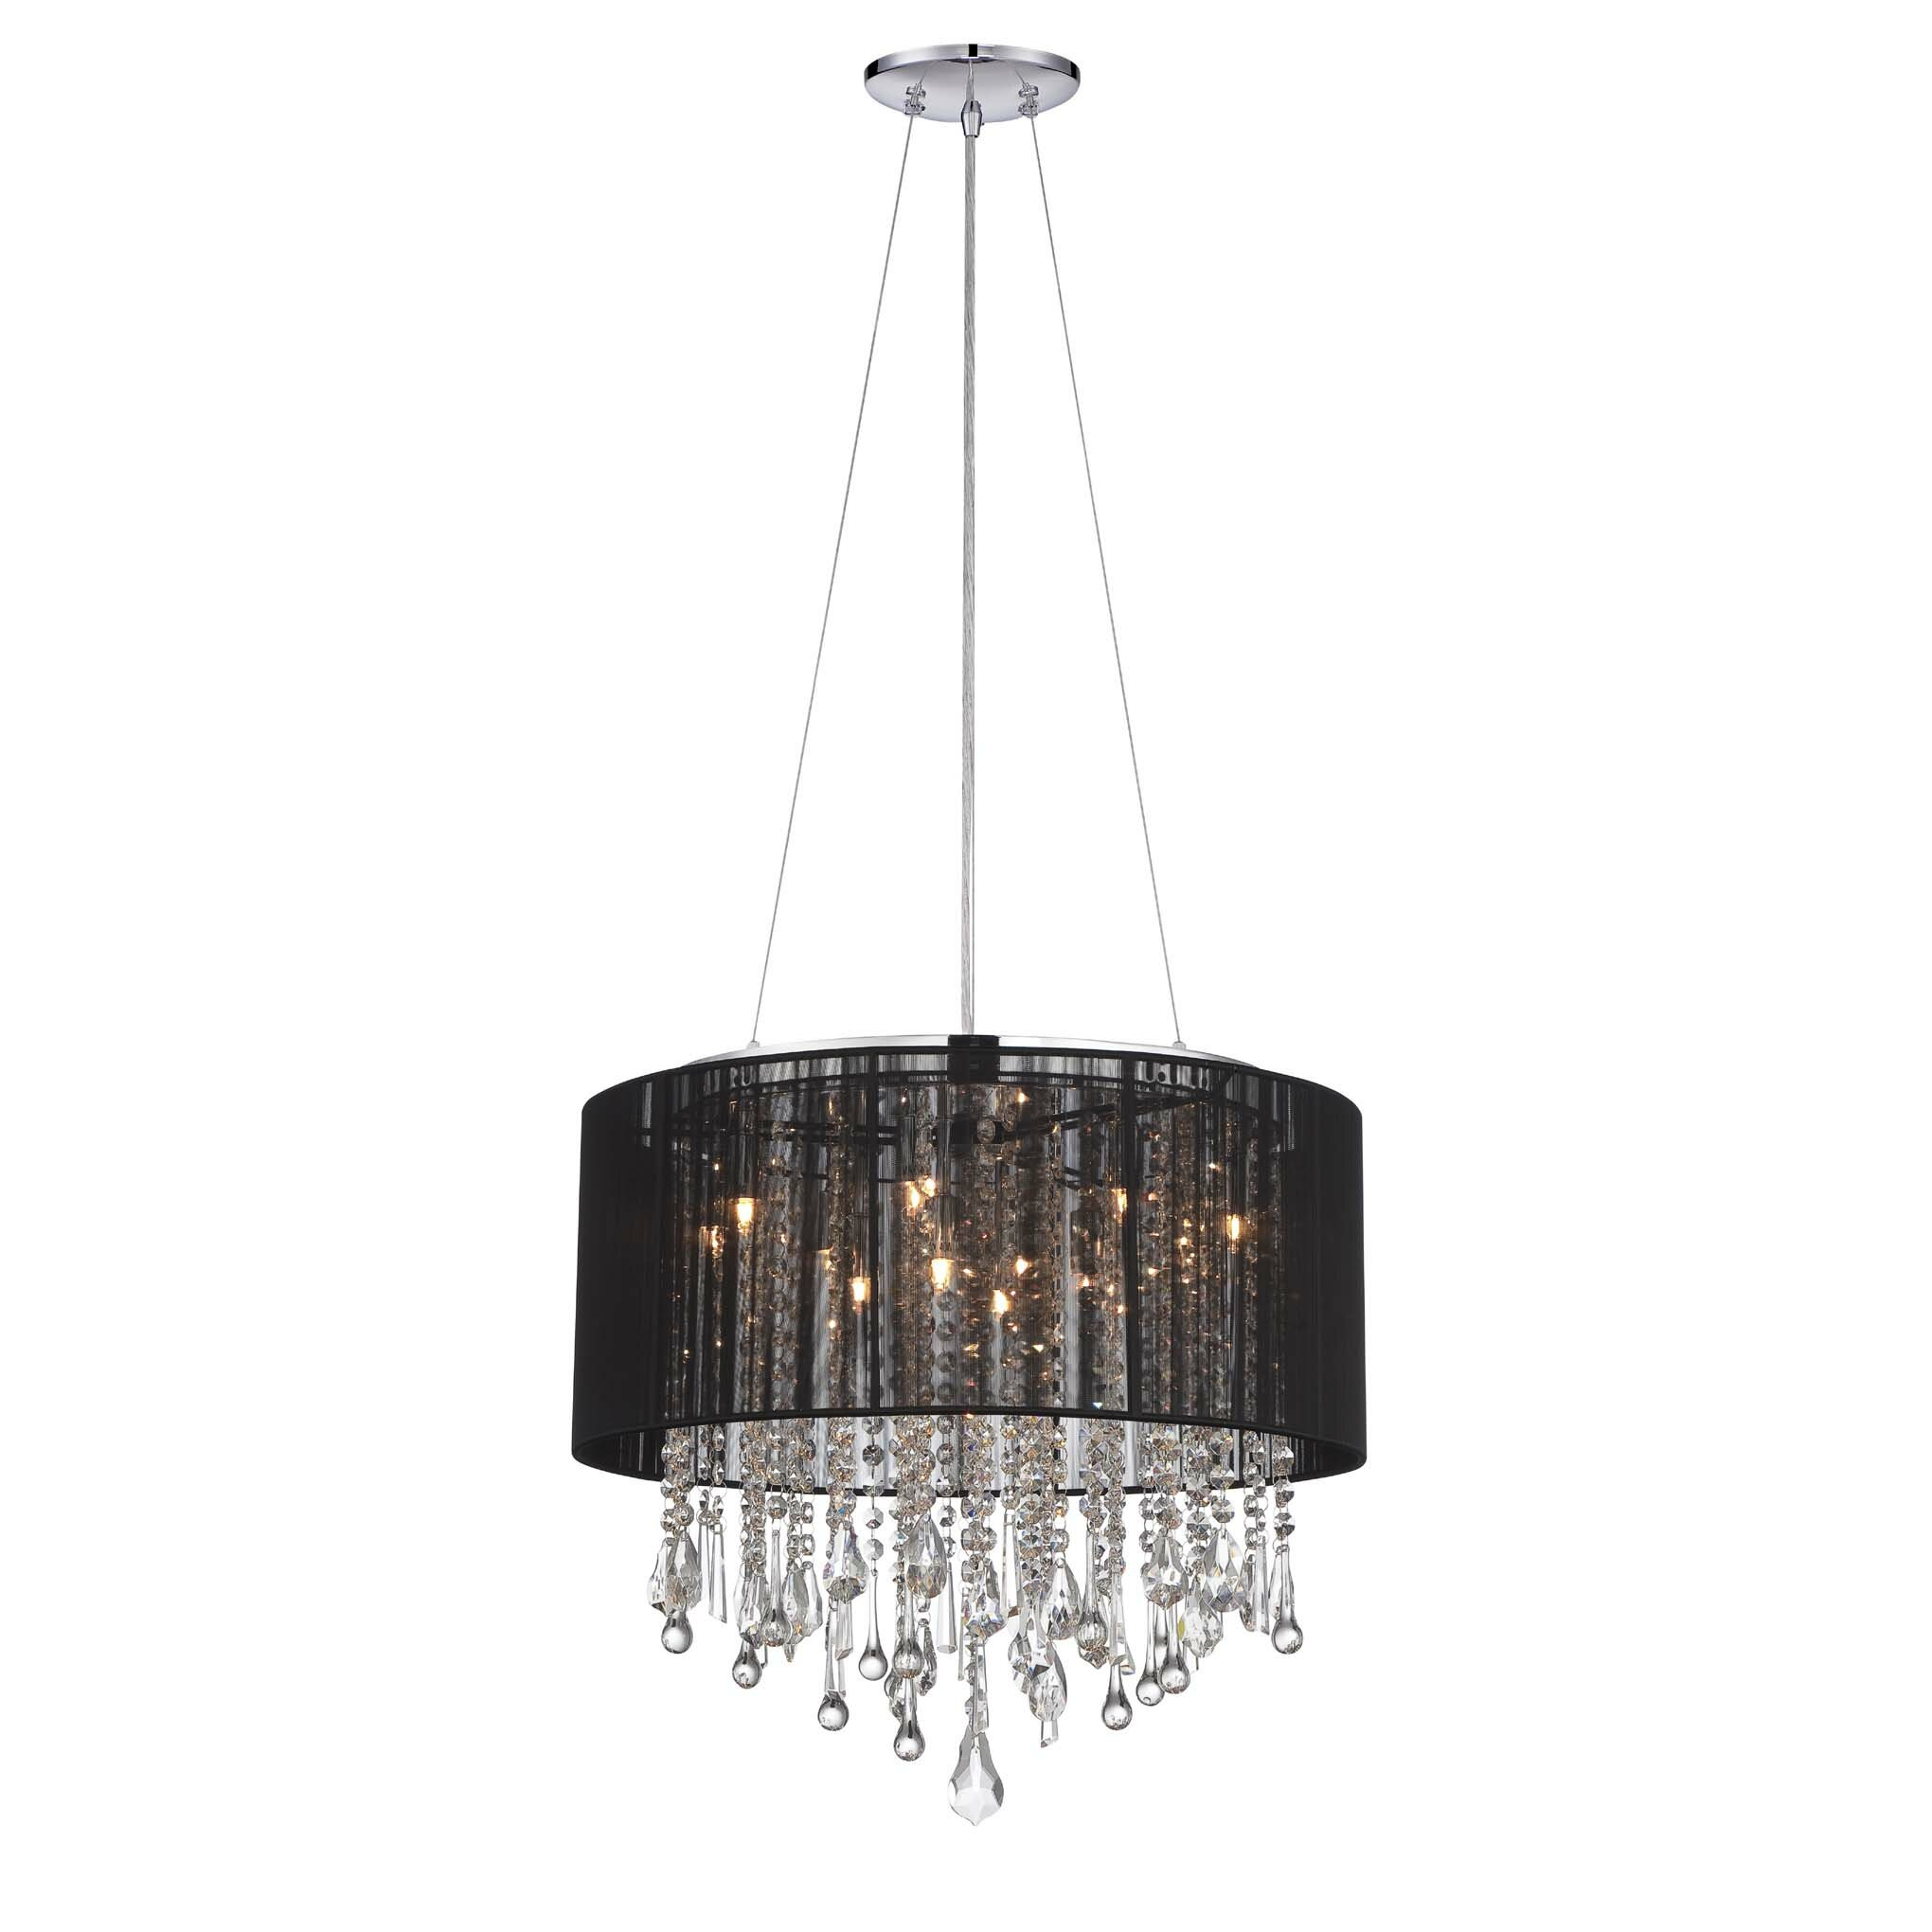 avenue lighting beverly drive 12 light drum chandelier chandeliers pendants wayfair drum lighting